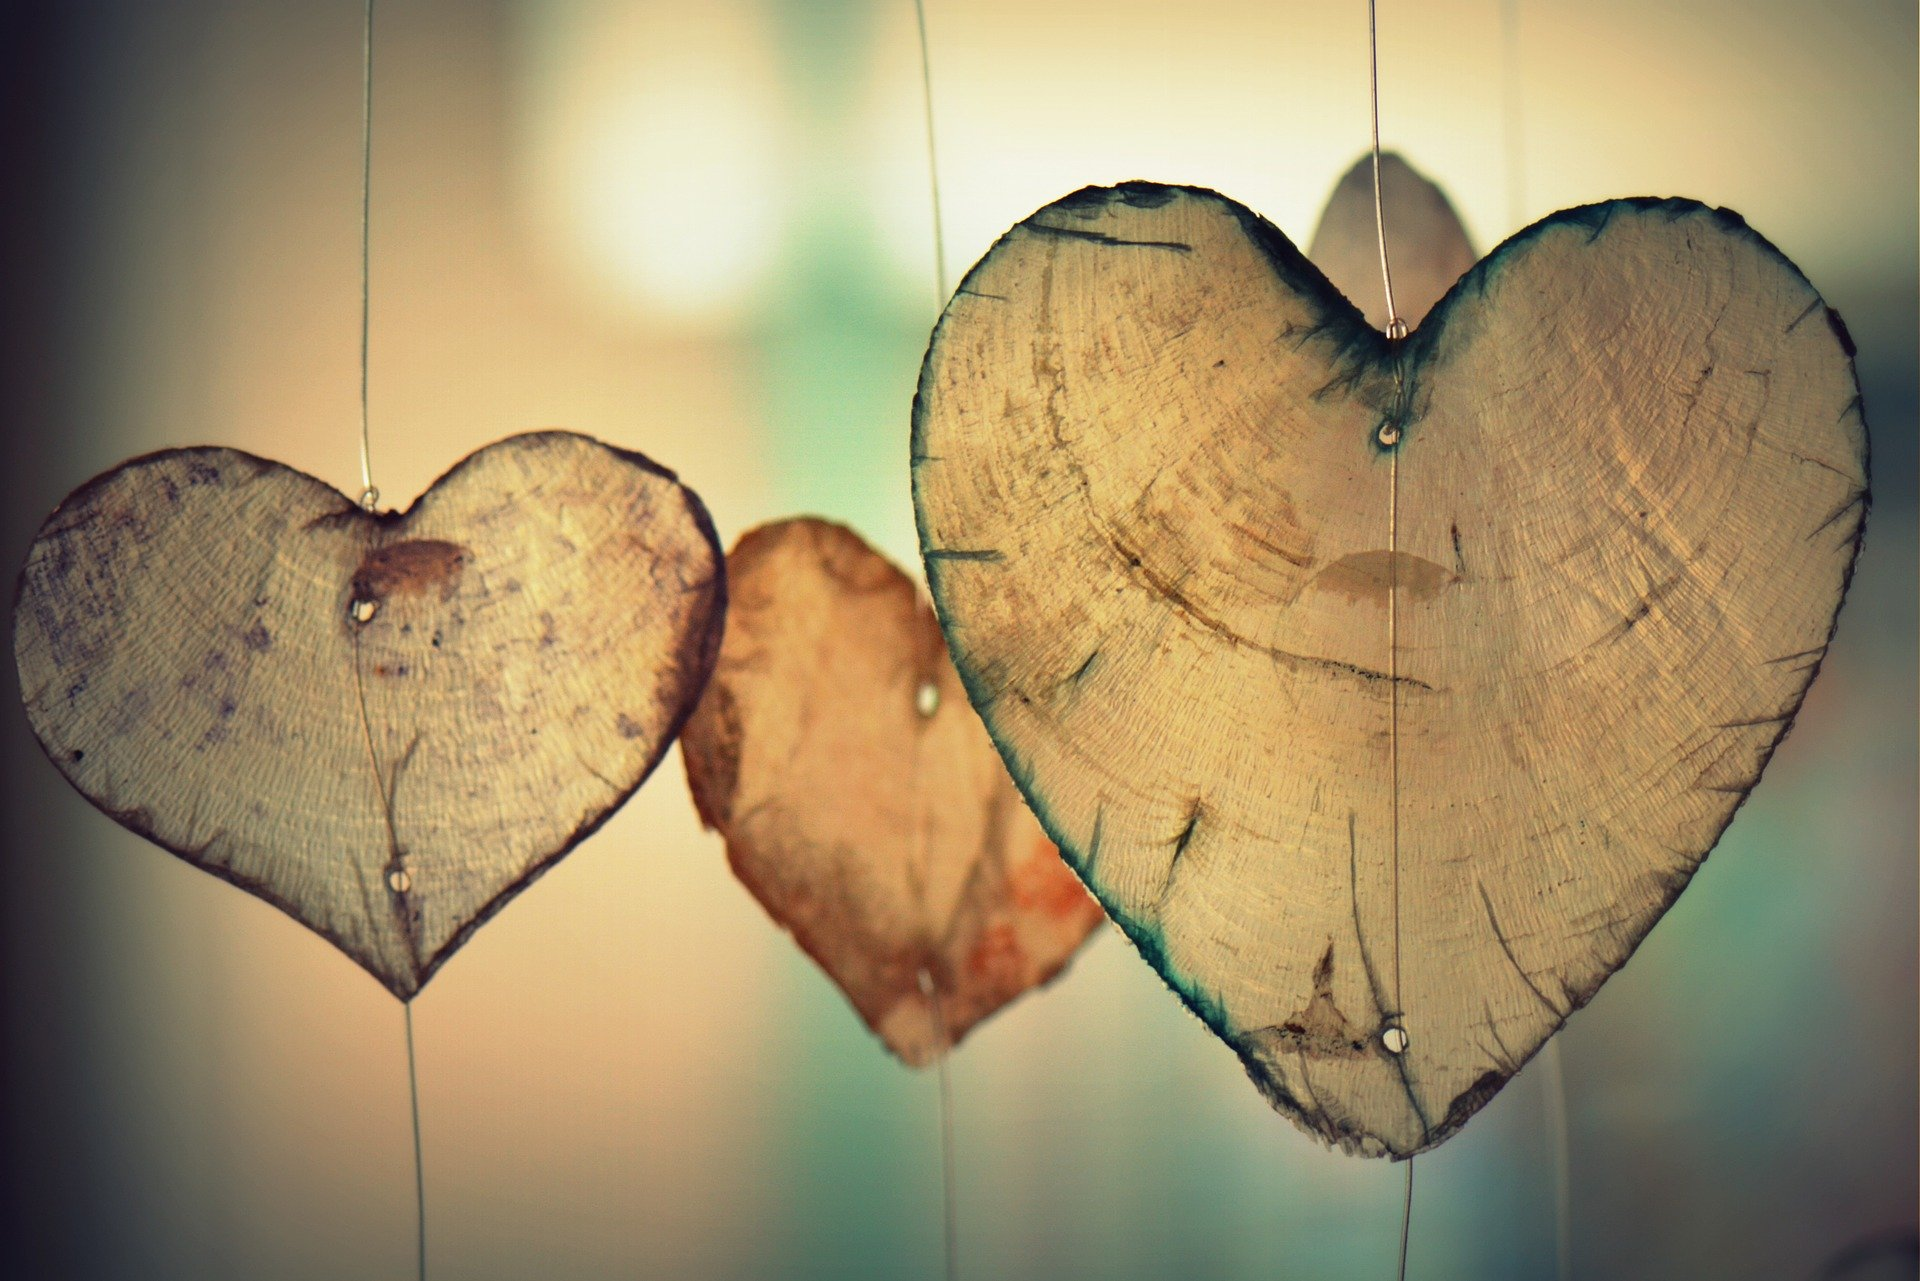 Hanging Heart Shapes made of wood